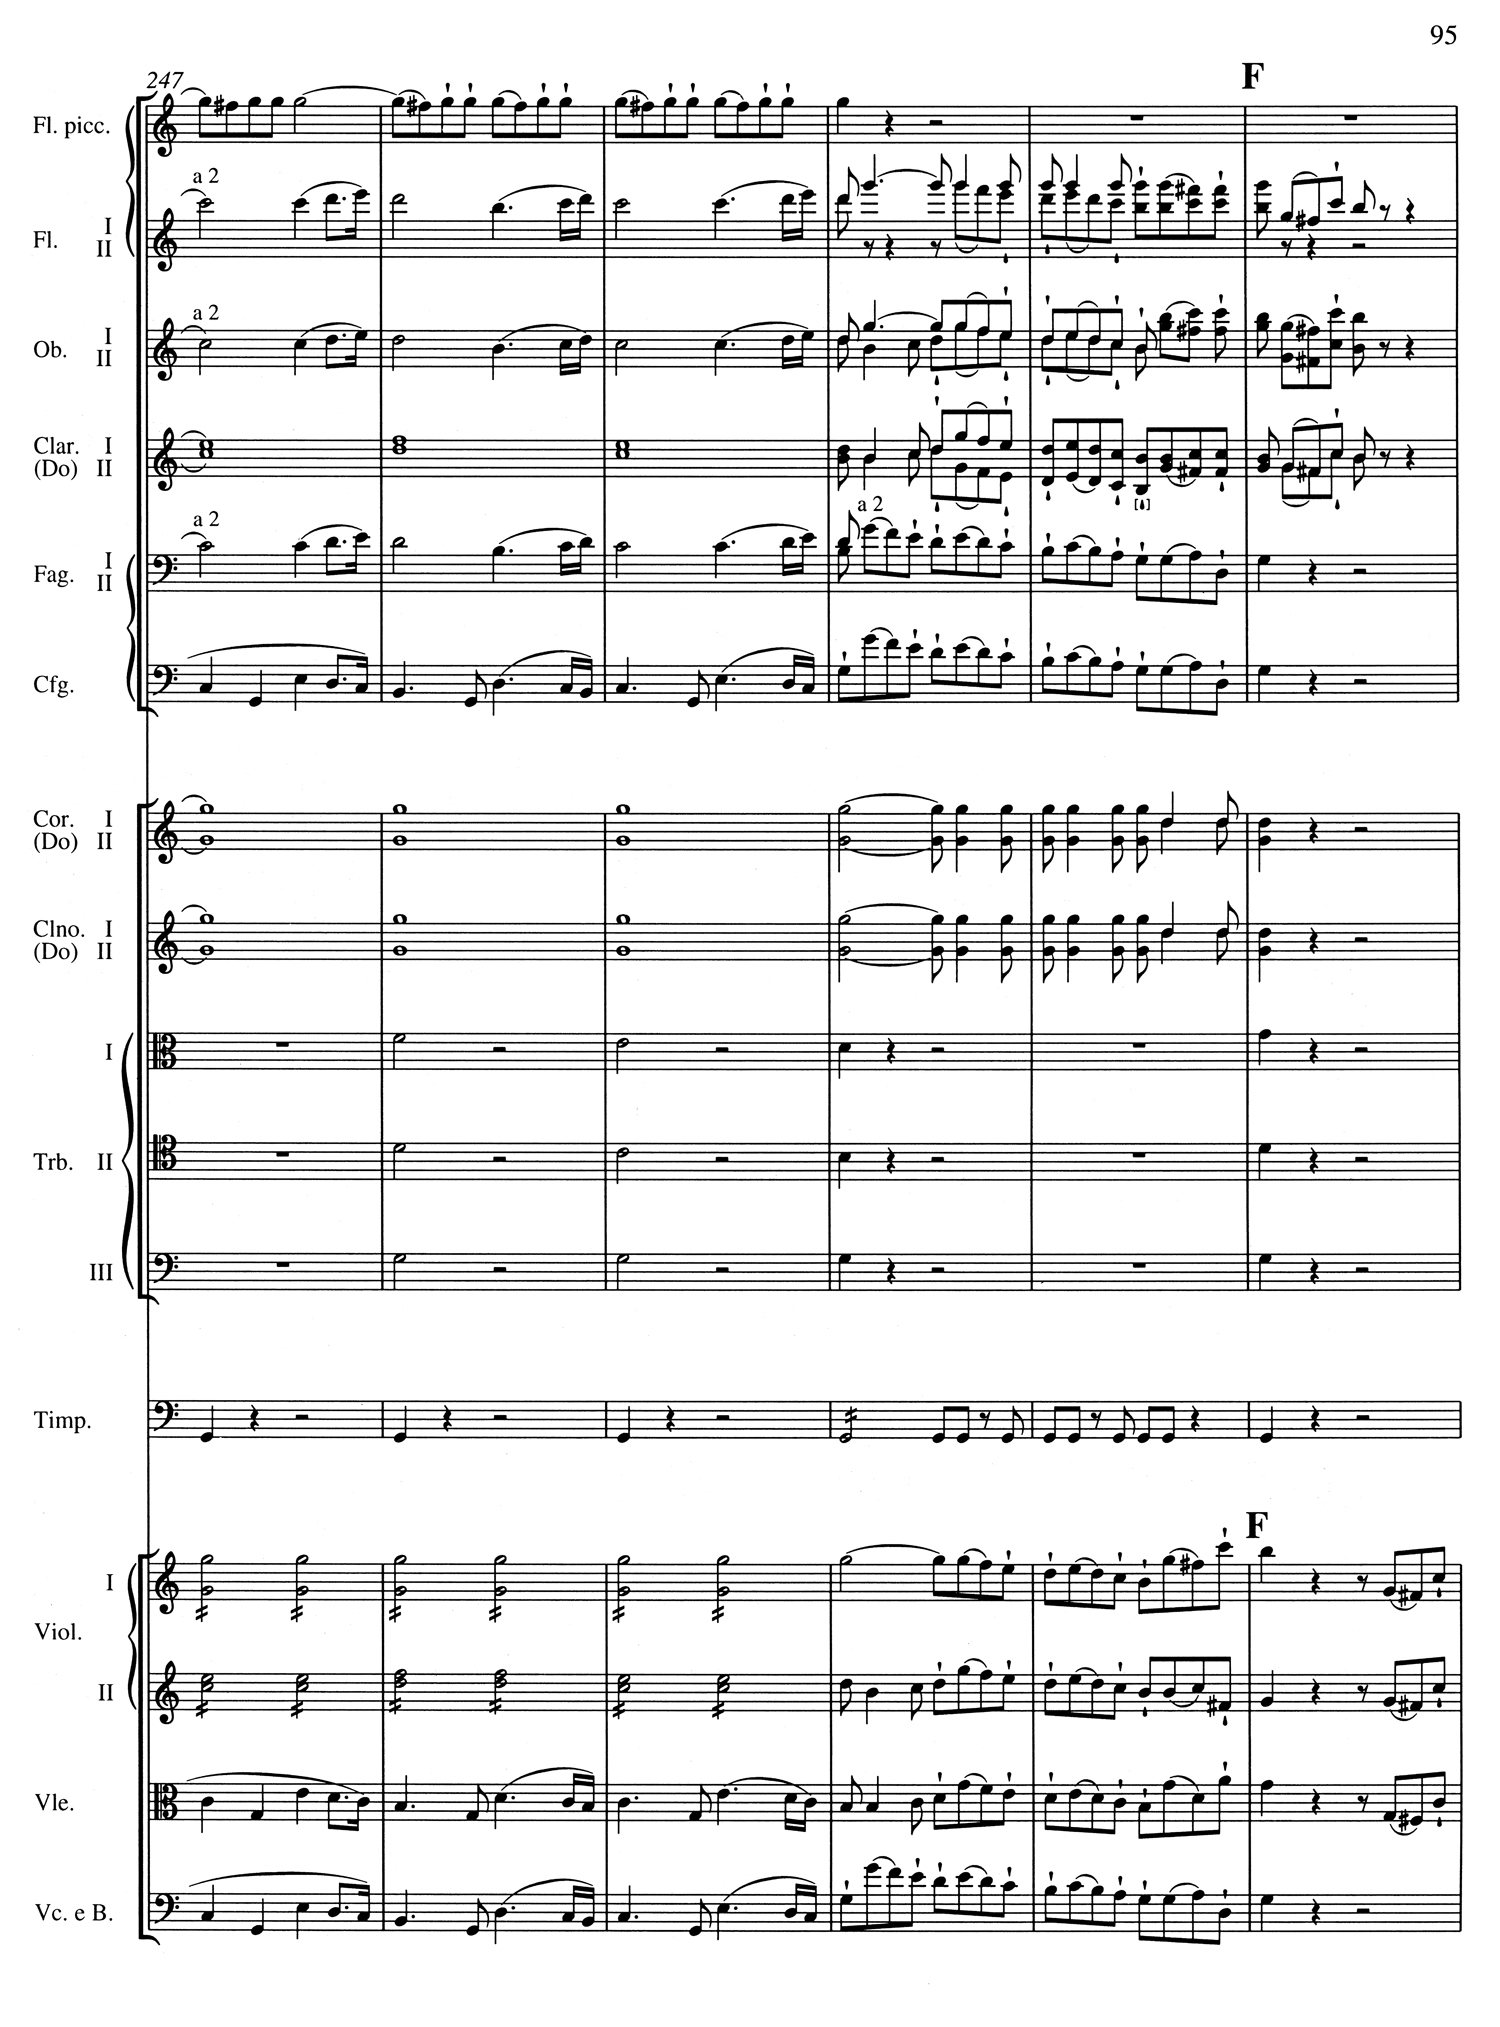 Beethoven 5 Score Page 7.jpg